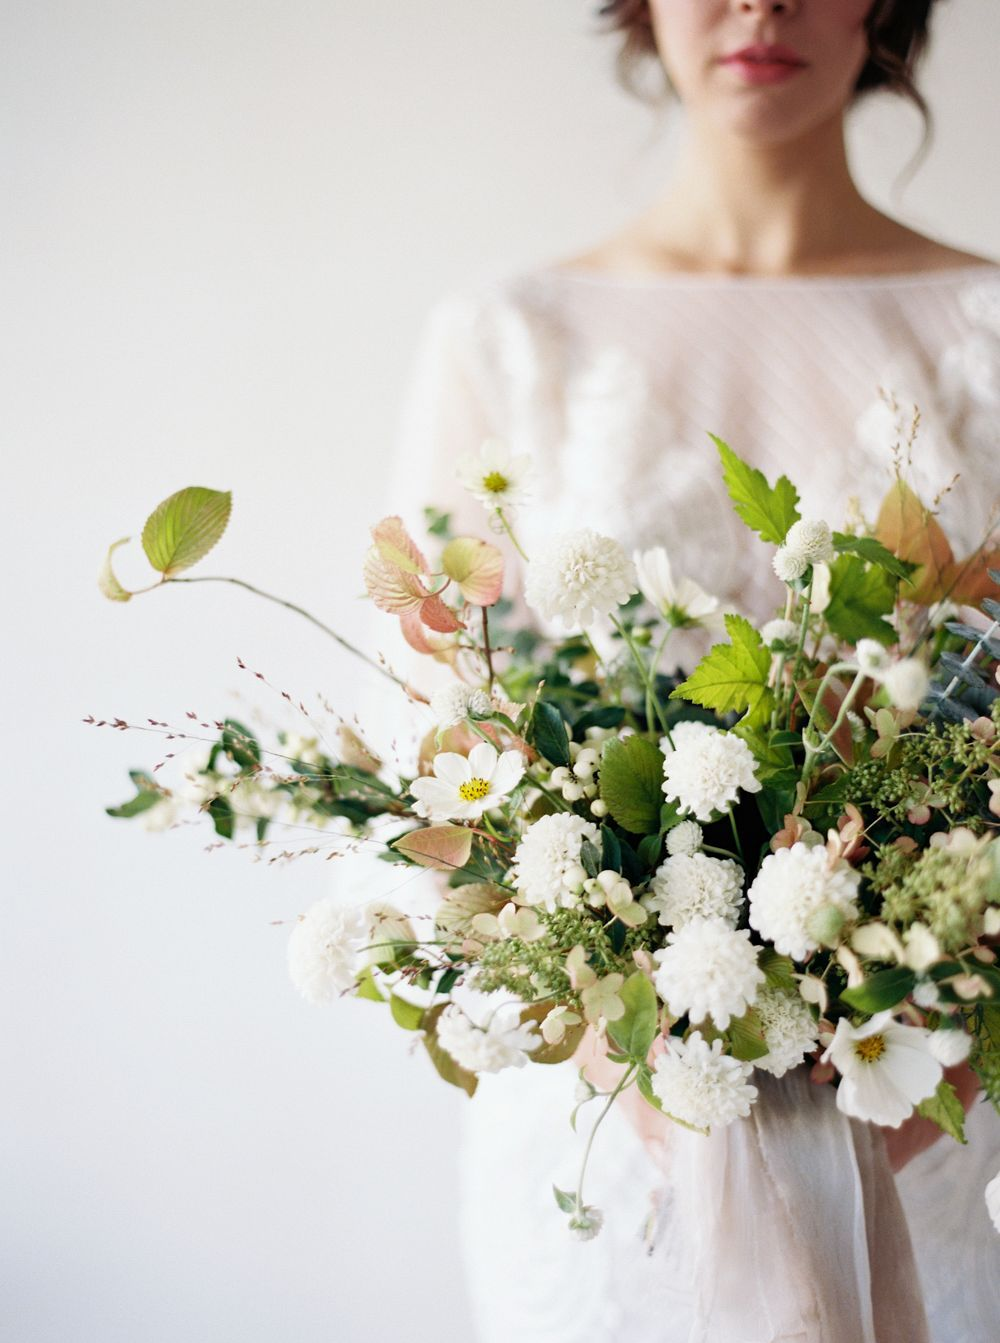 Bouquet Sposa Minimal.Minimalist Wedding Inspiration For The Hopeless Romantic White